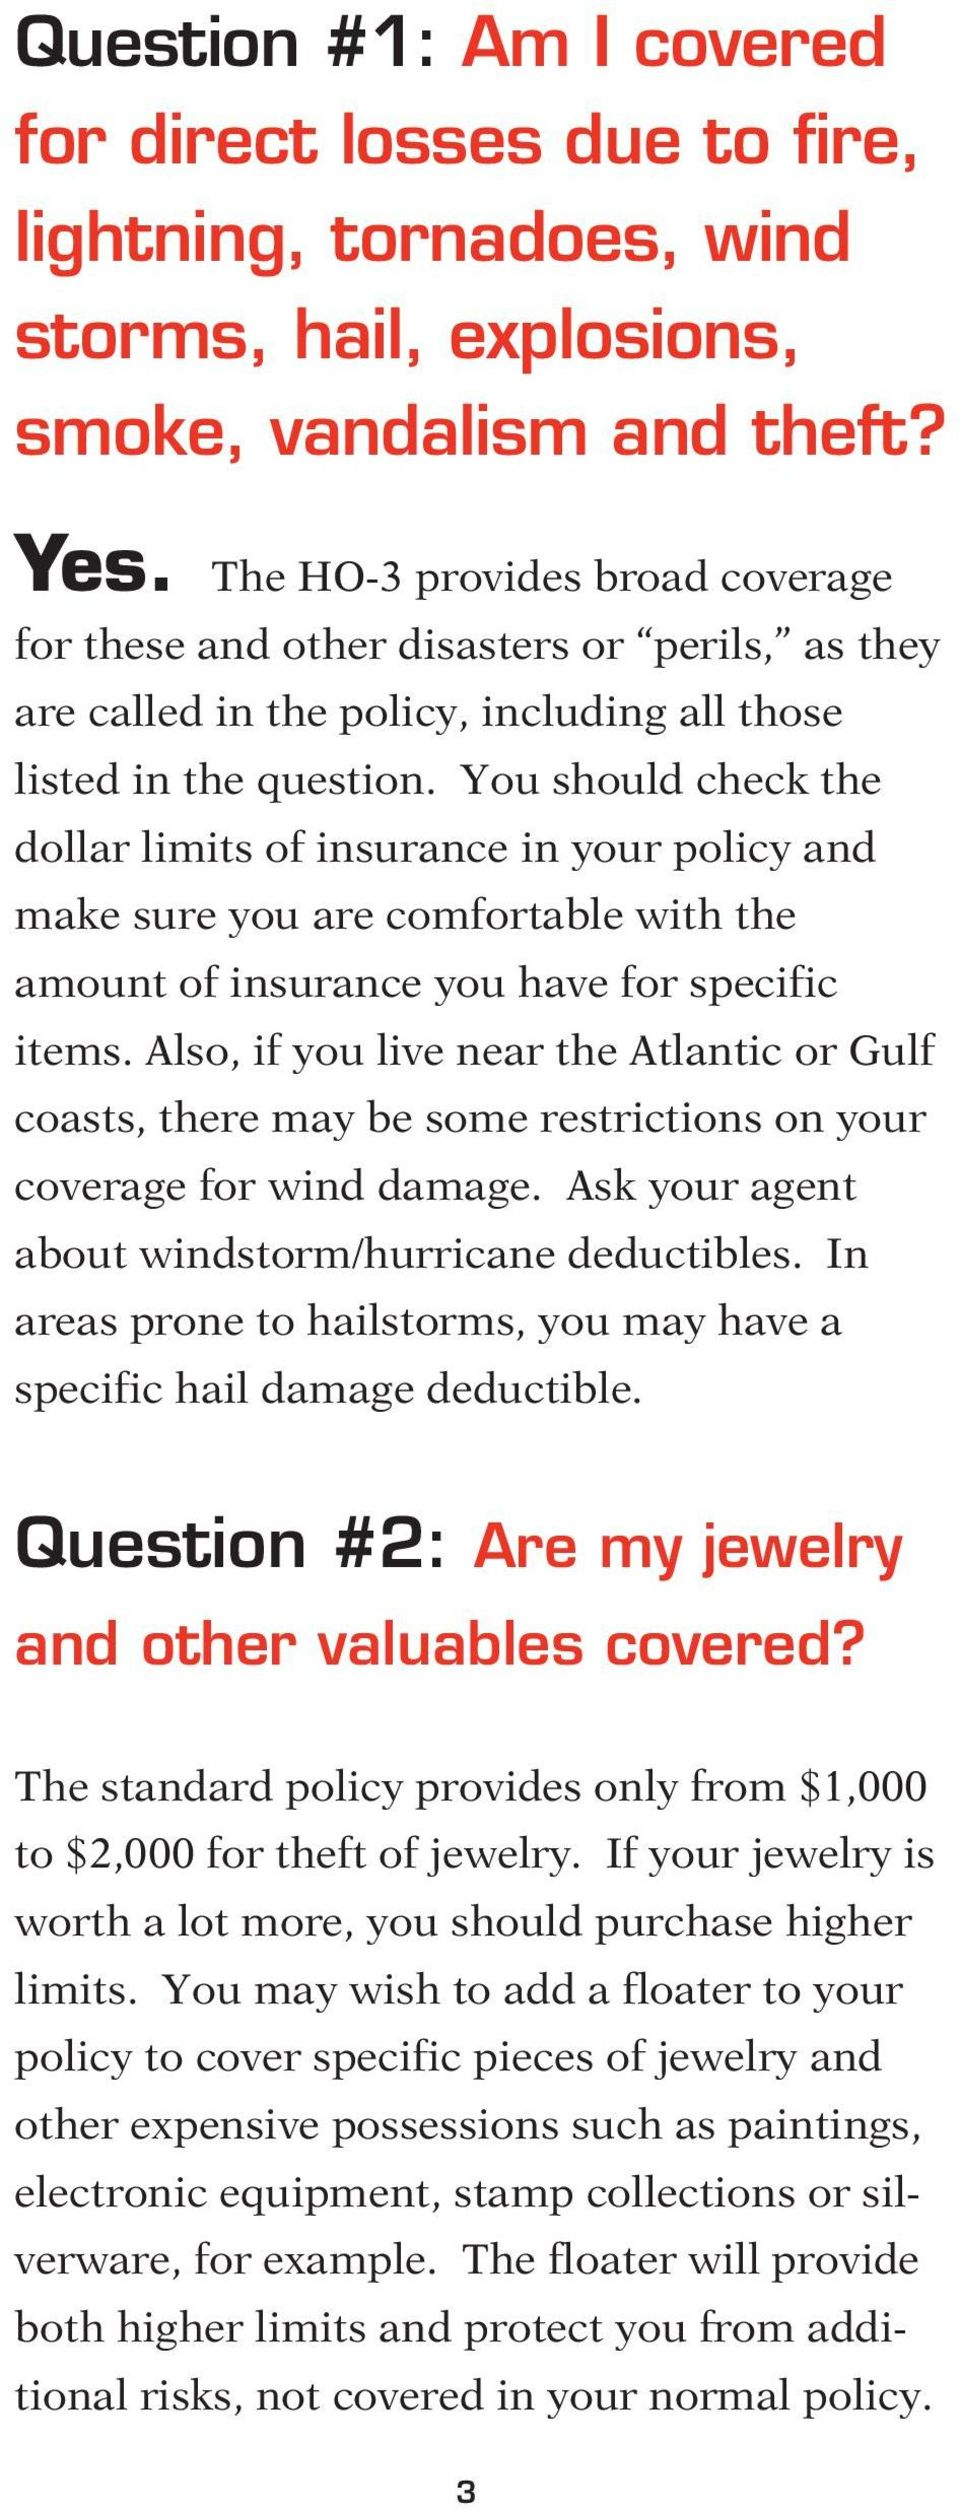 You should check the dollar limits of insurance in your policy and make sure you are comfortable with the amount of insurance you have for specific items.